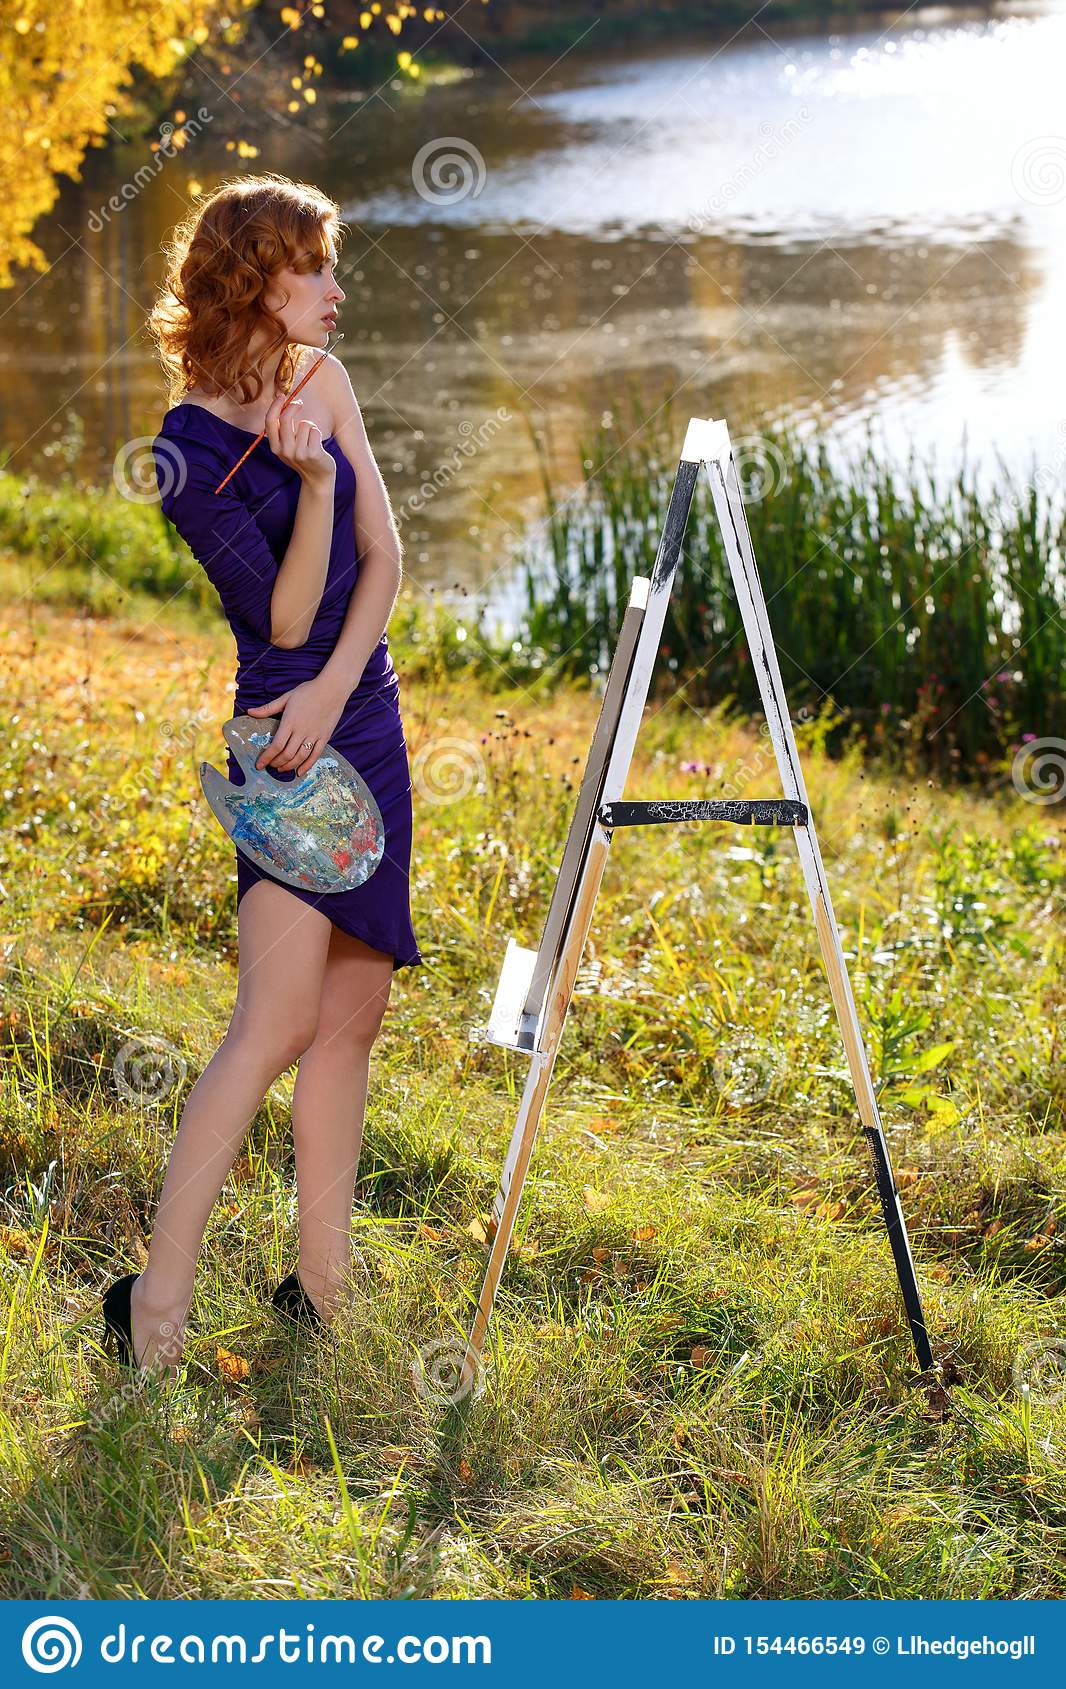 Young Woman In Dress Painting Outdoors In Autumn Park Stock Image Image Of Idea Colouring 154466549